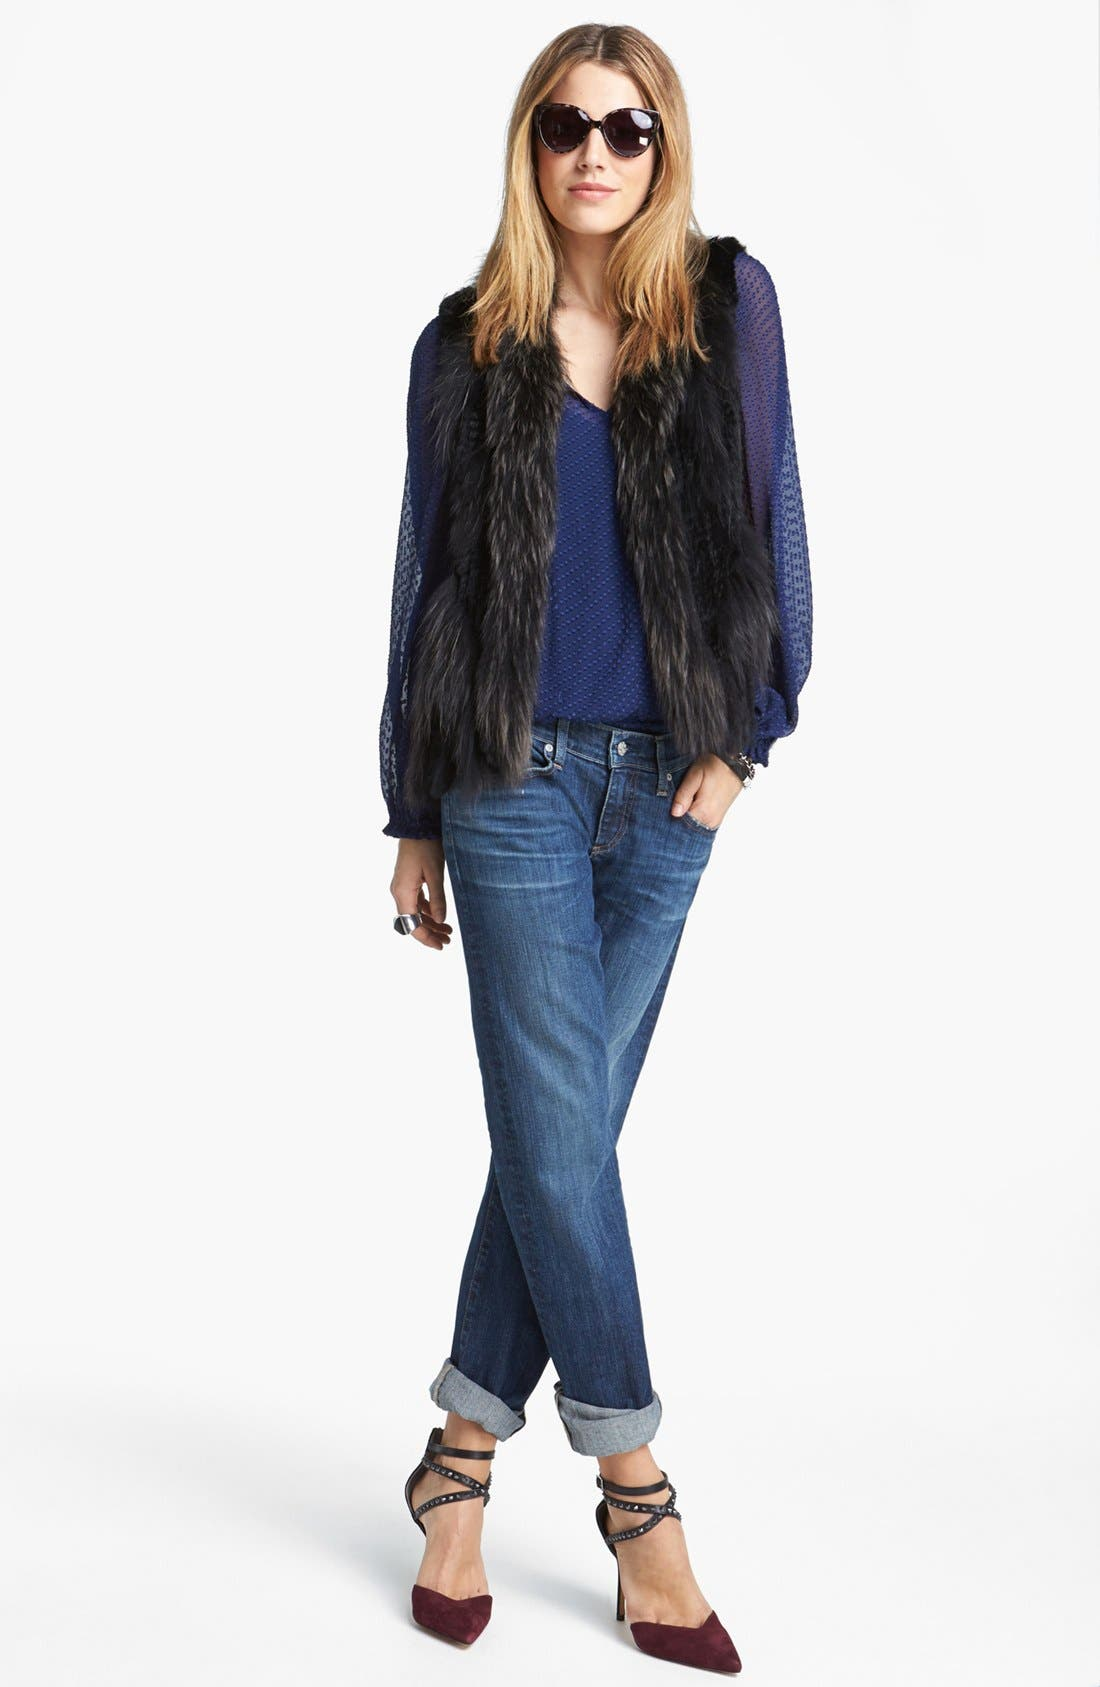 Main Image - AG Jeans Relaxed Jeans, Ella Moss Top & Linda Richards Vest